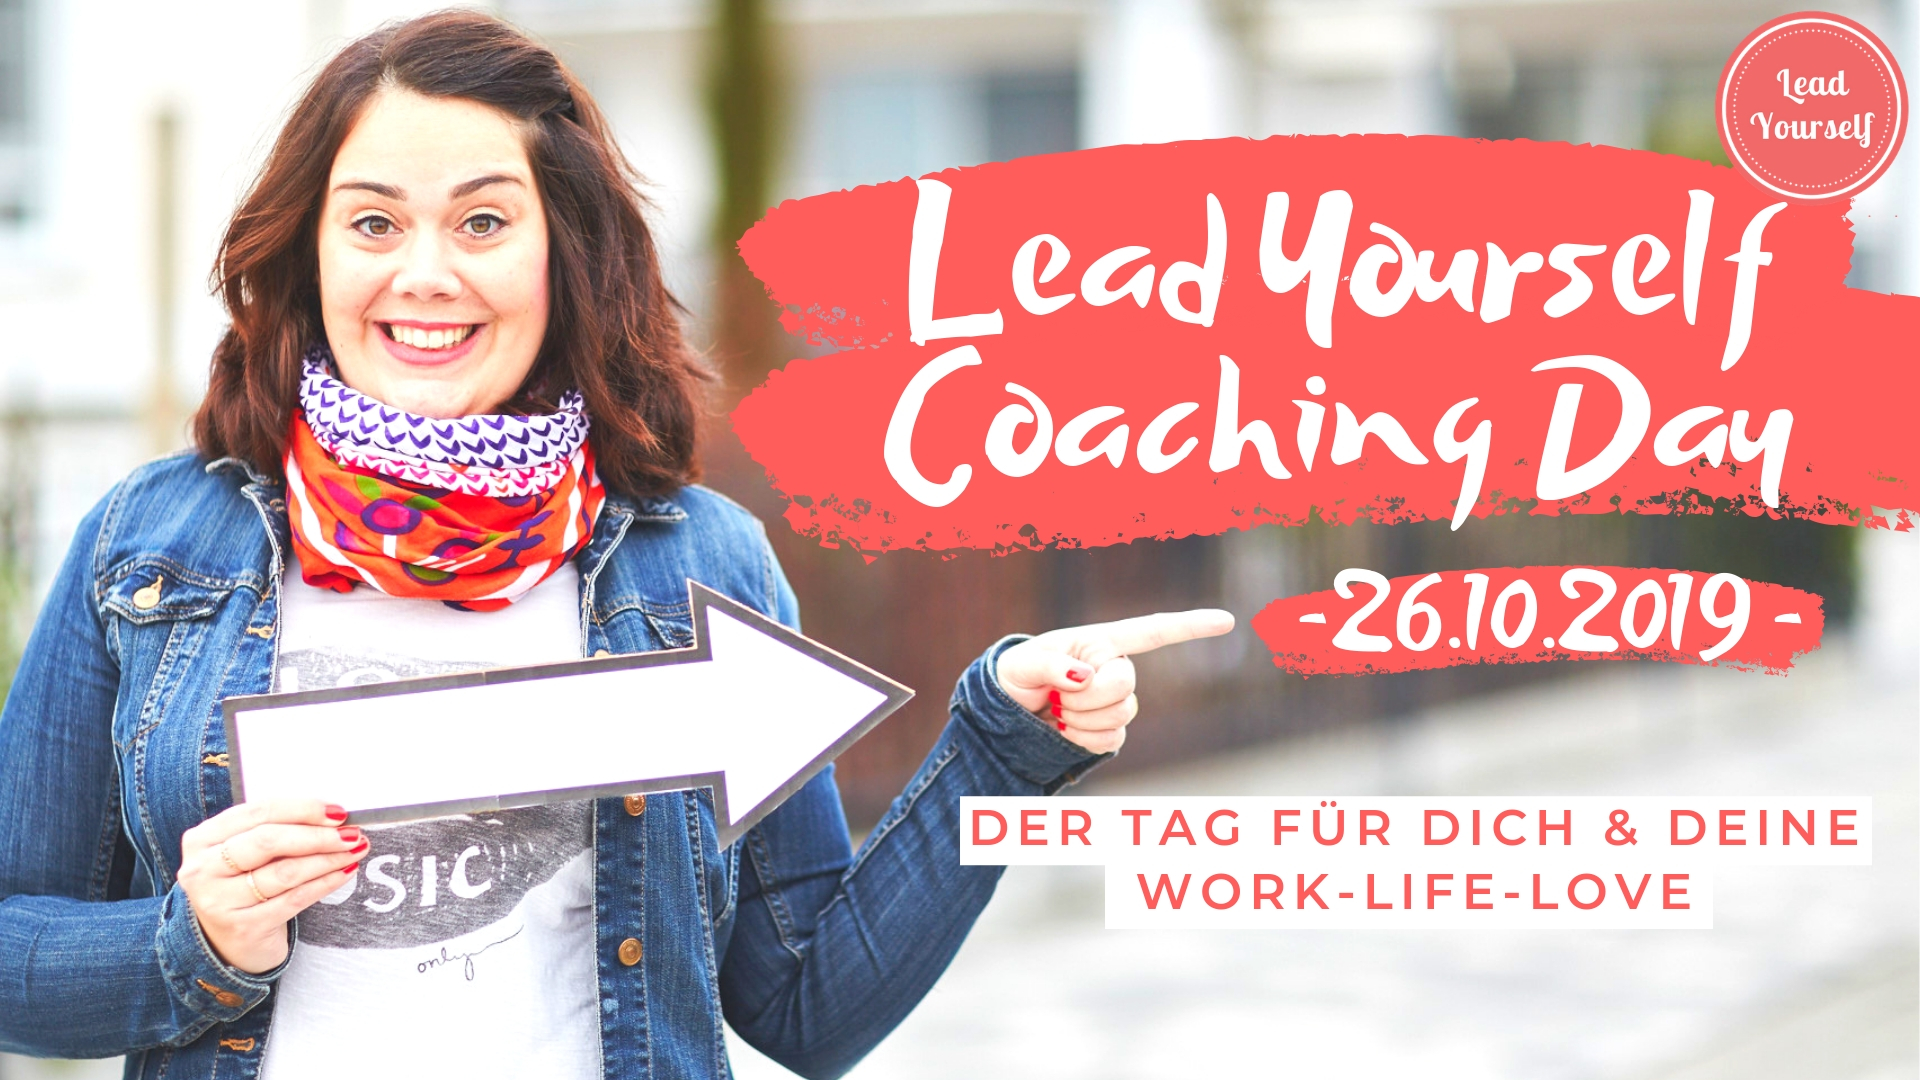 Lead yourself coaching day 2019 cover